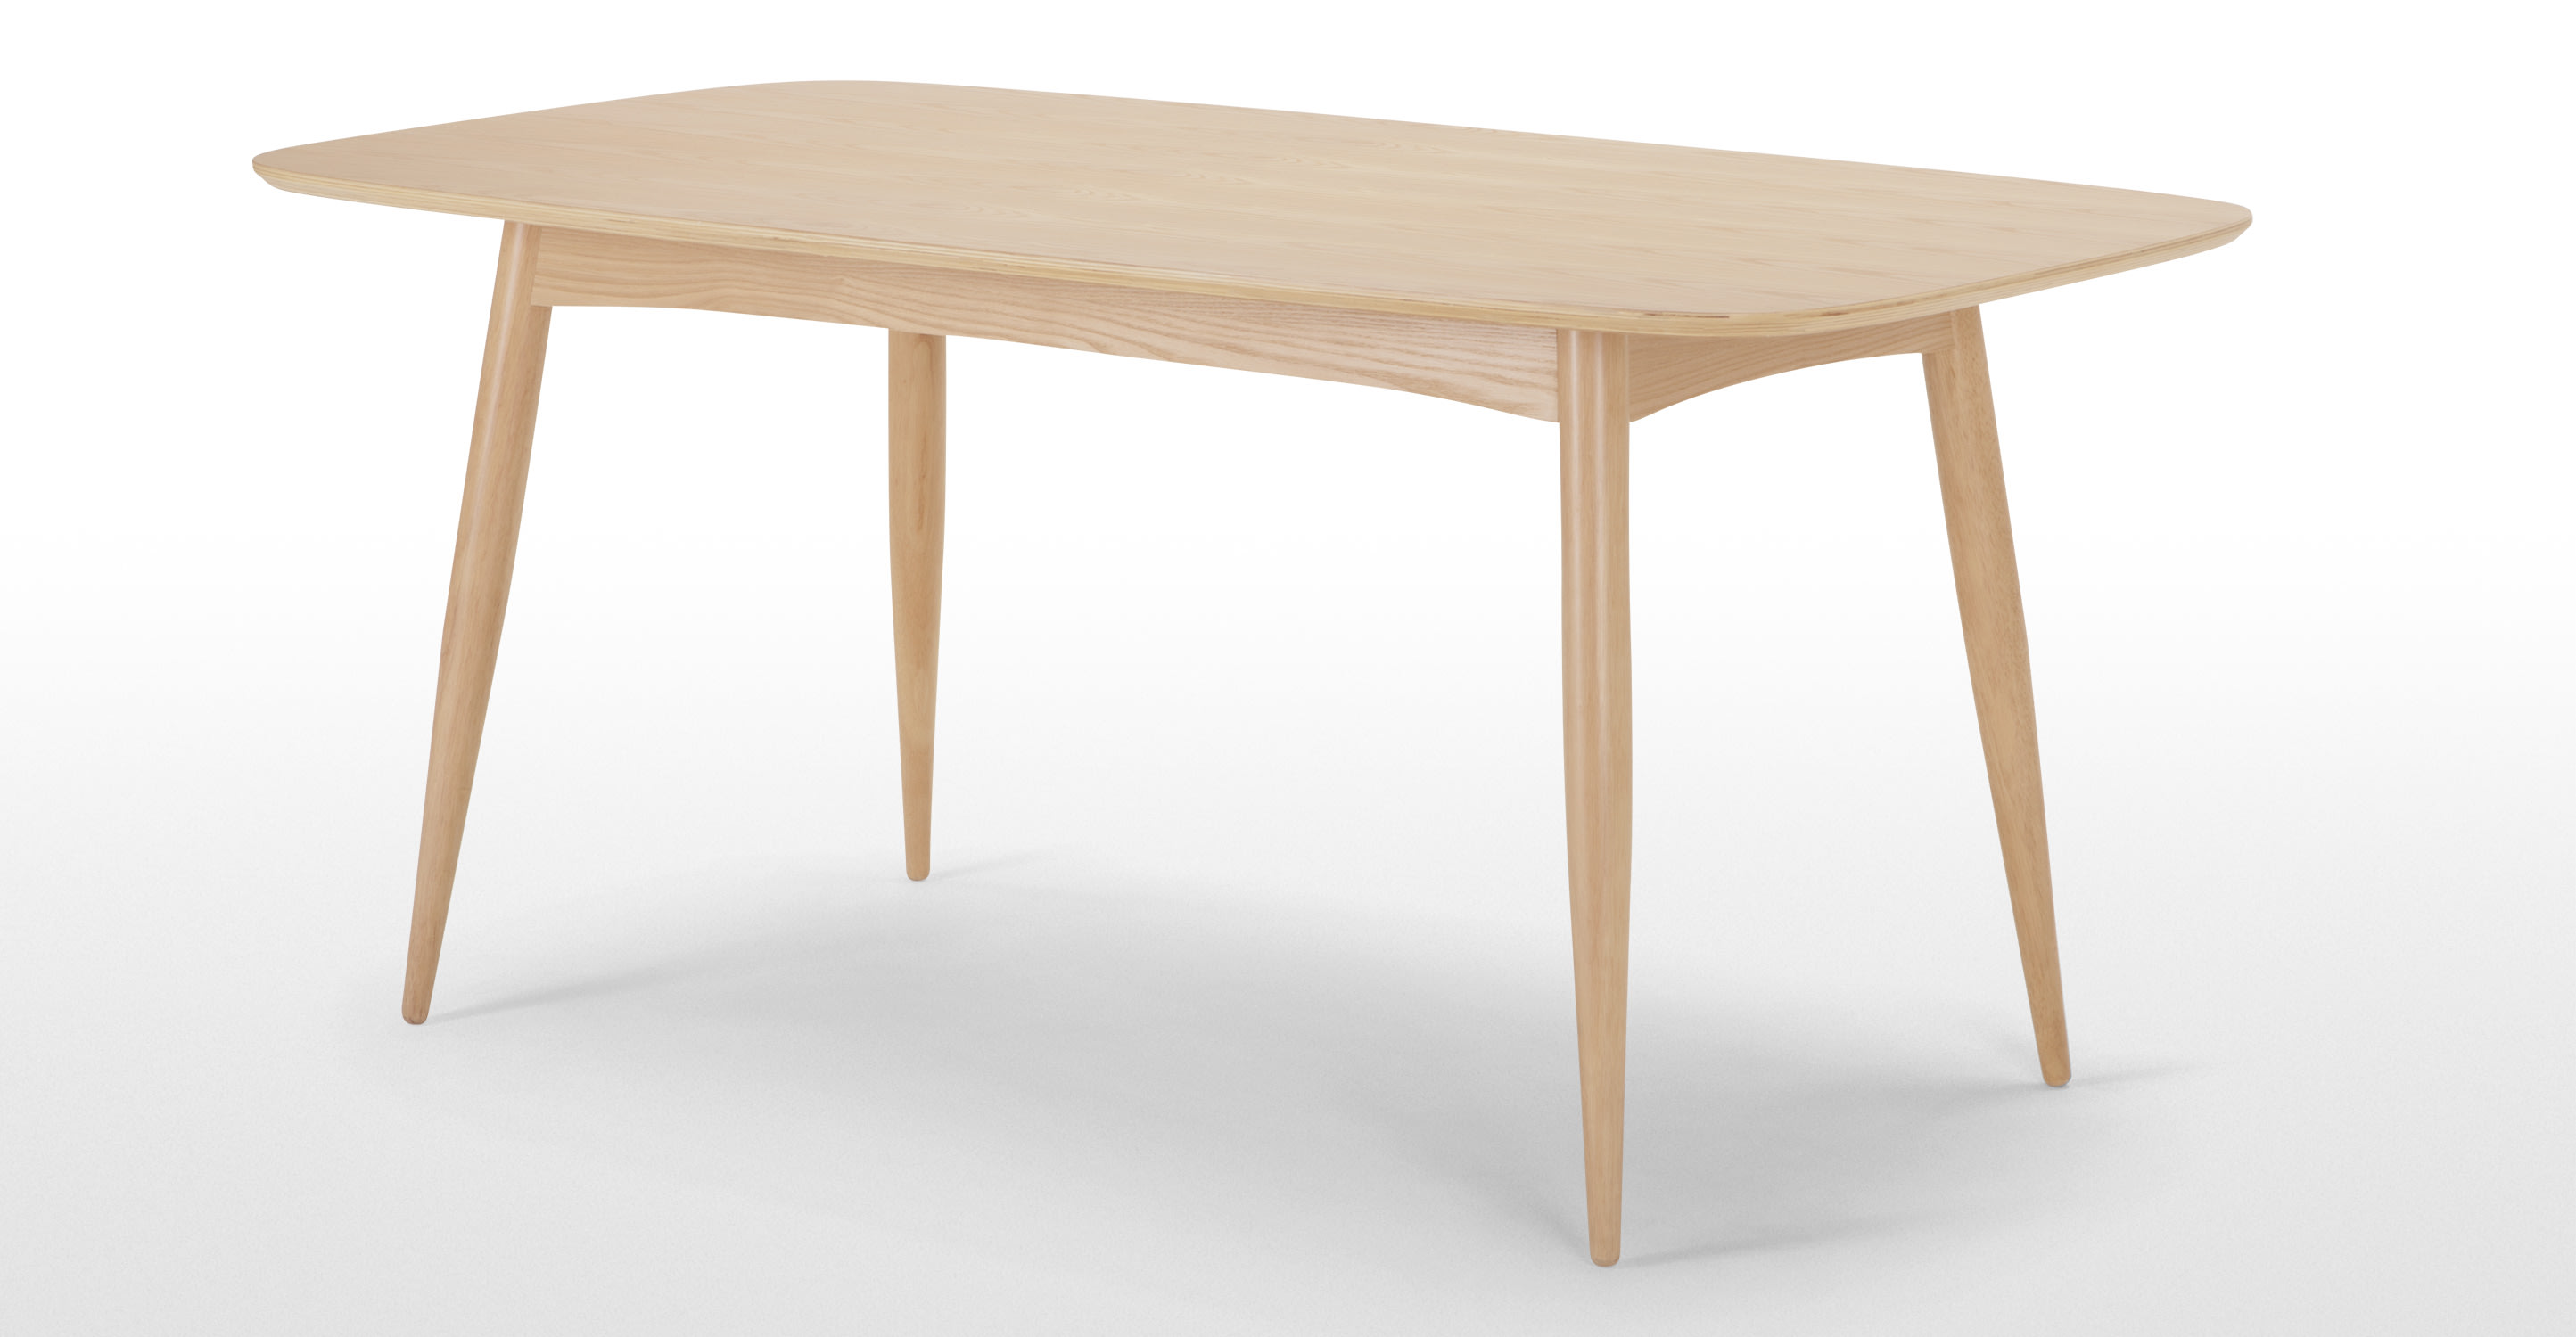 Deauville Dining Table Ash madecom : deauvilletableashlb4 from www.made.com size 2889 x 1500 jpeg 166kB